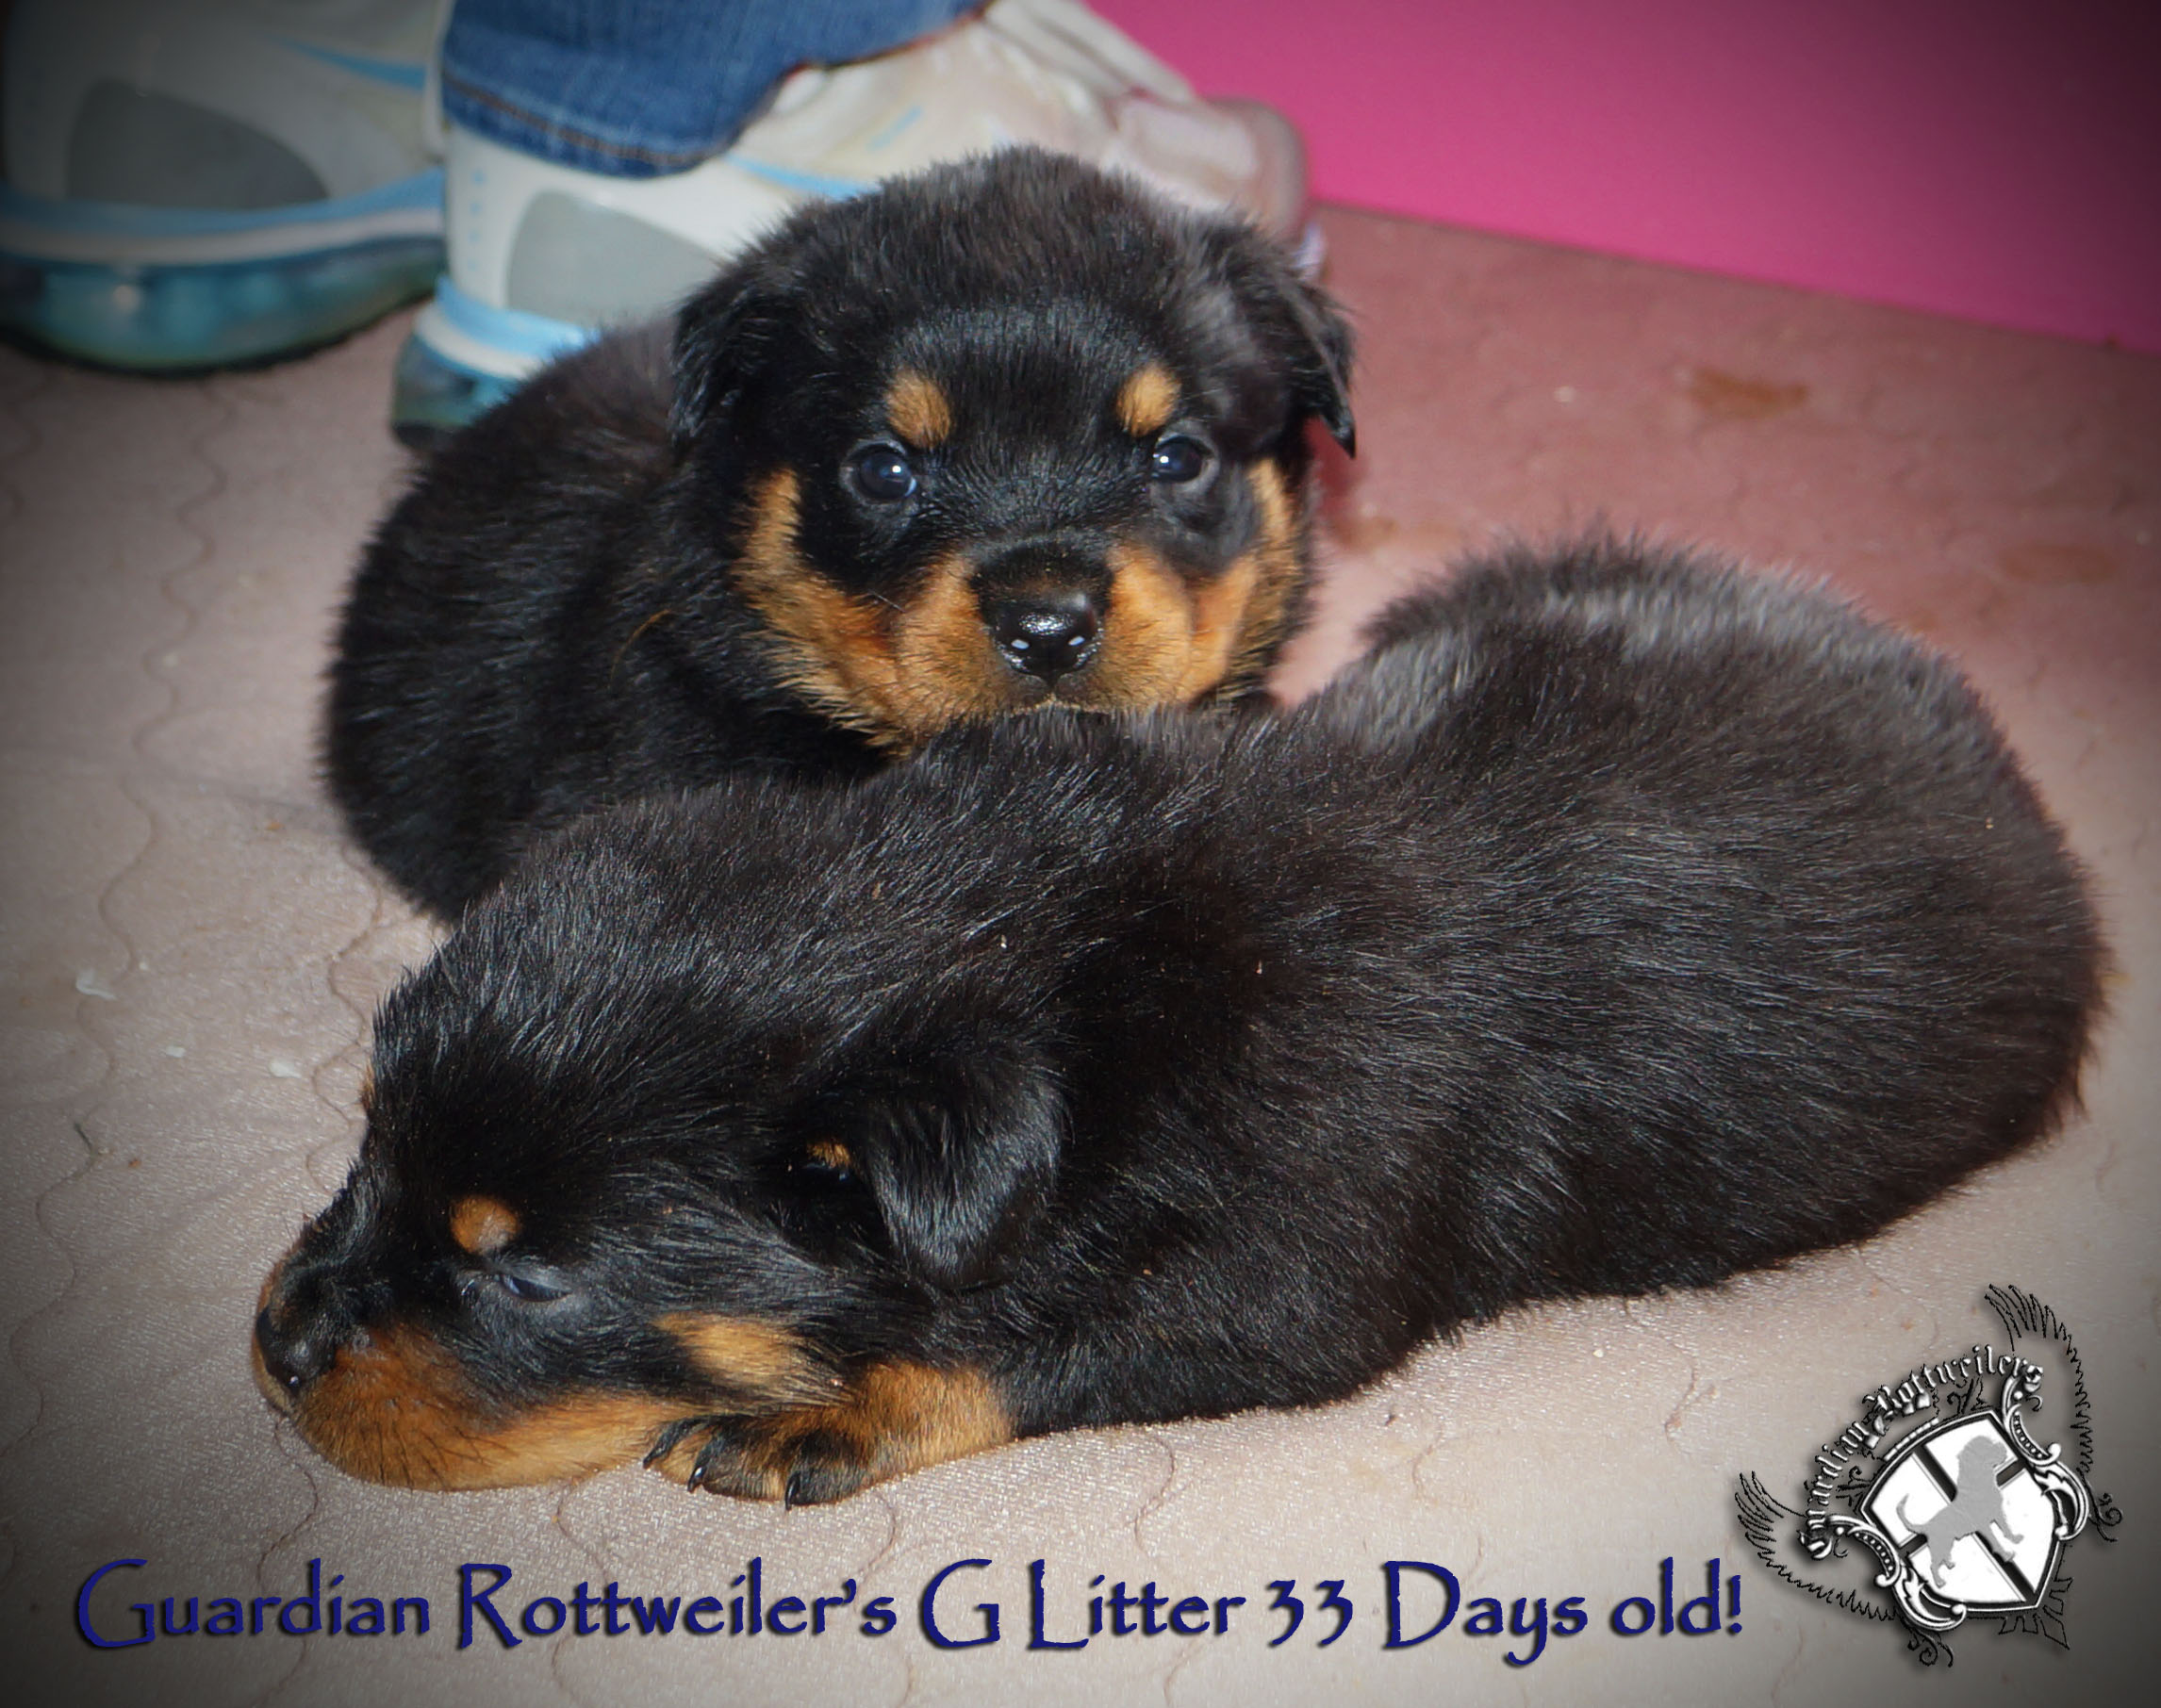 Most Inspiring Rottweiler Chubby Adorable Dog - glitter33days03  Pic_423465  .jpg